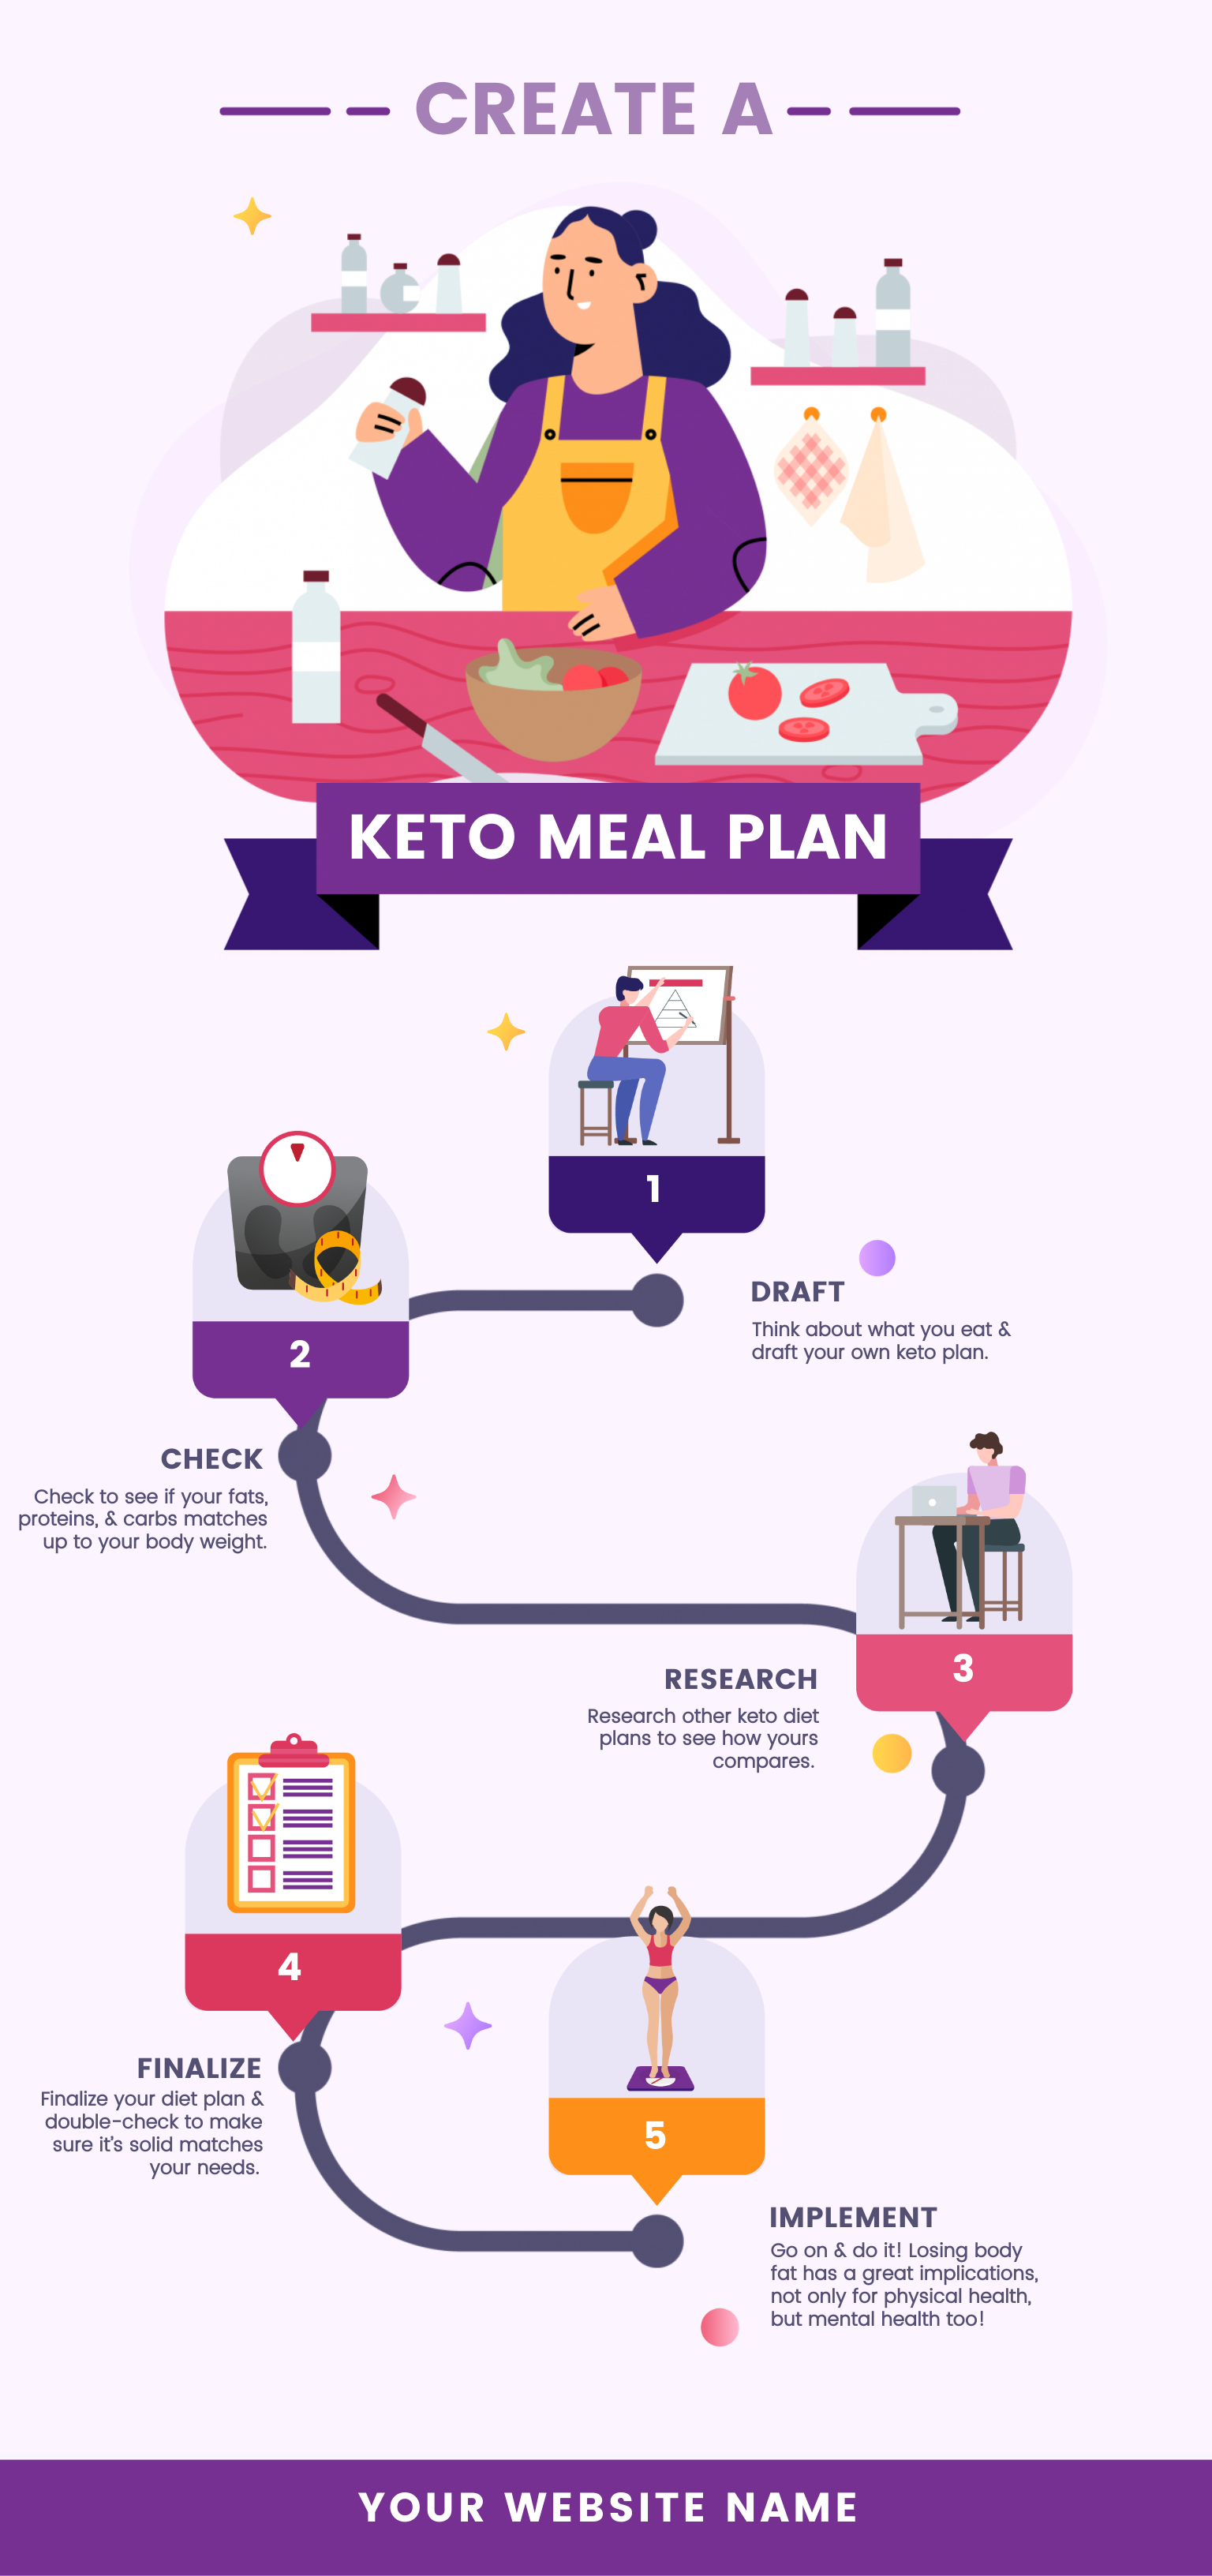 Keto meal plan flowchart infographic